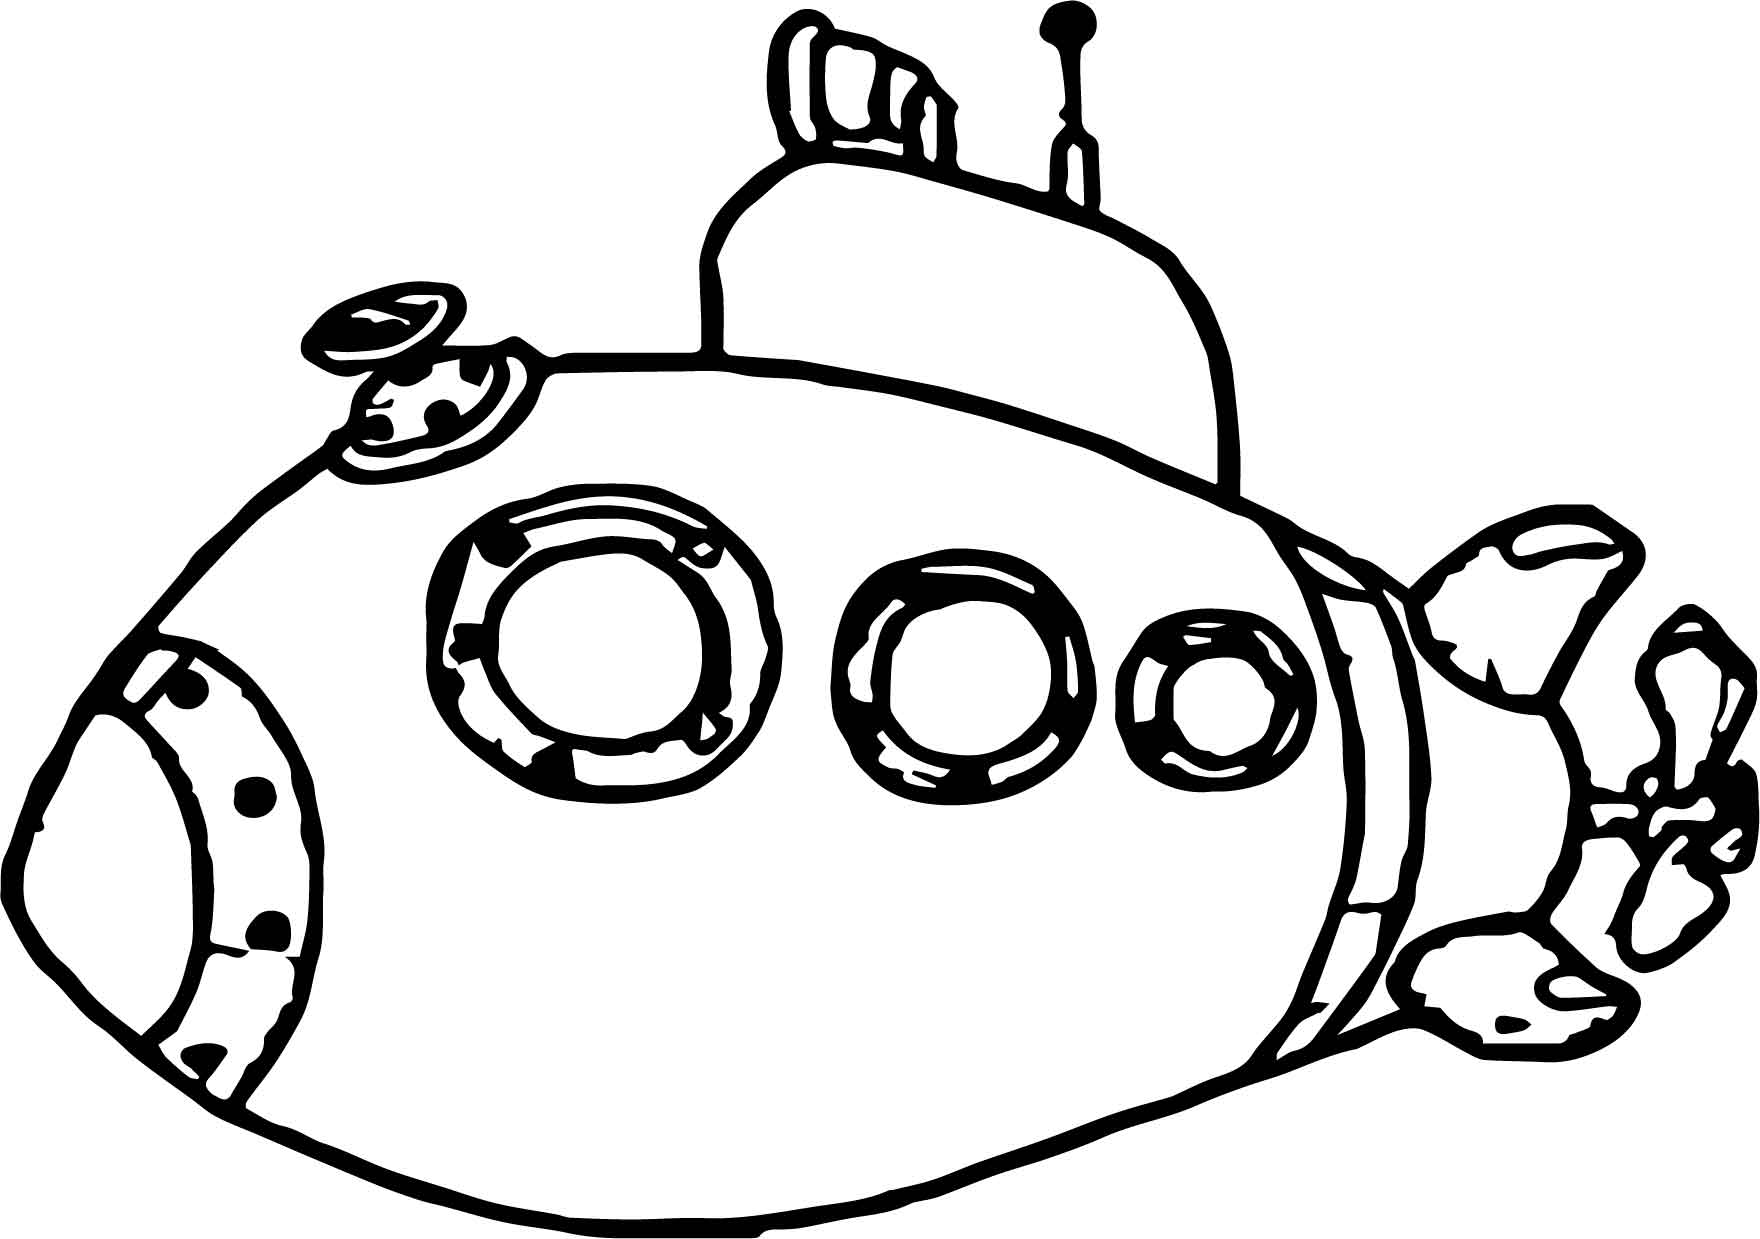 Underwater Submarine Coloring Page Wecoloringpage Submarine Coloring Pages